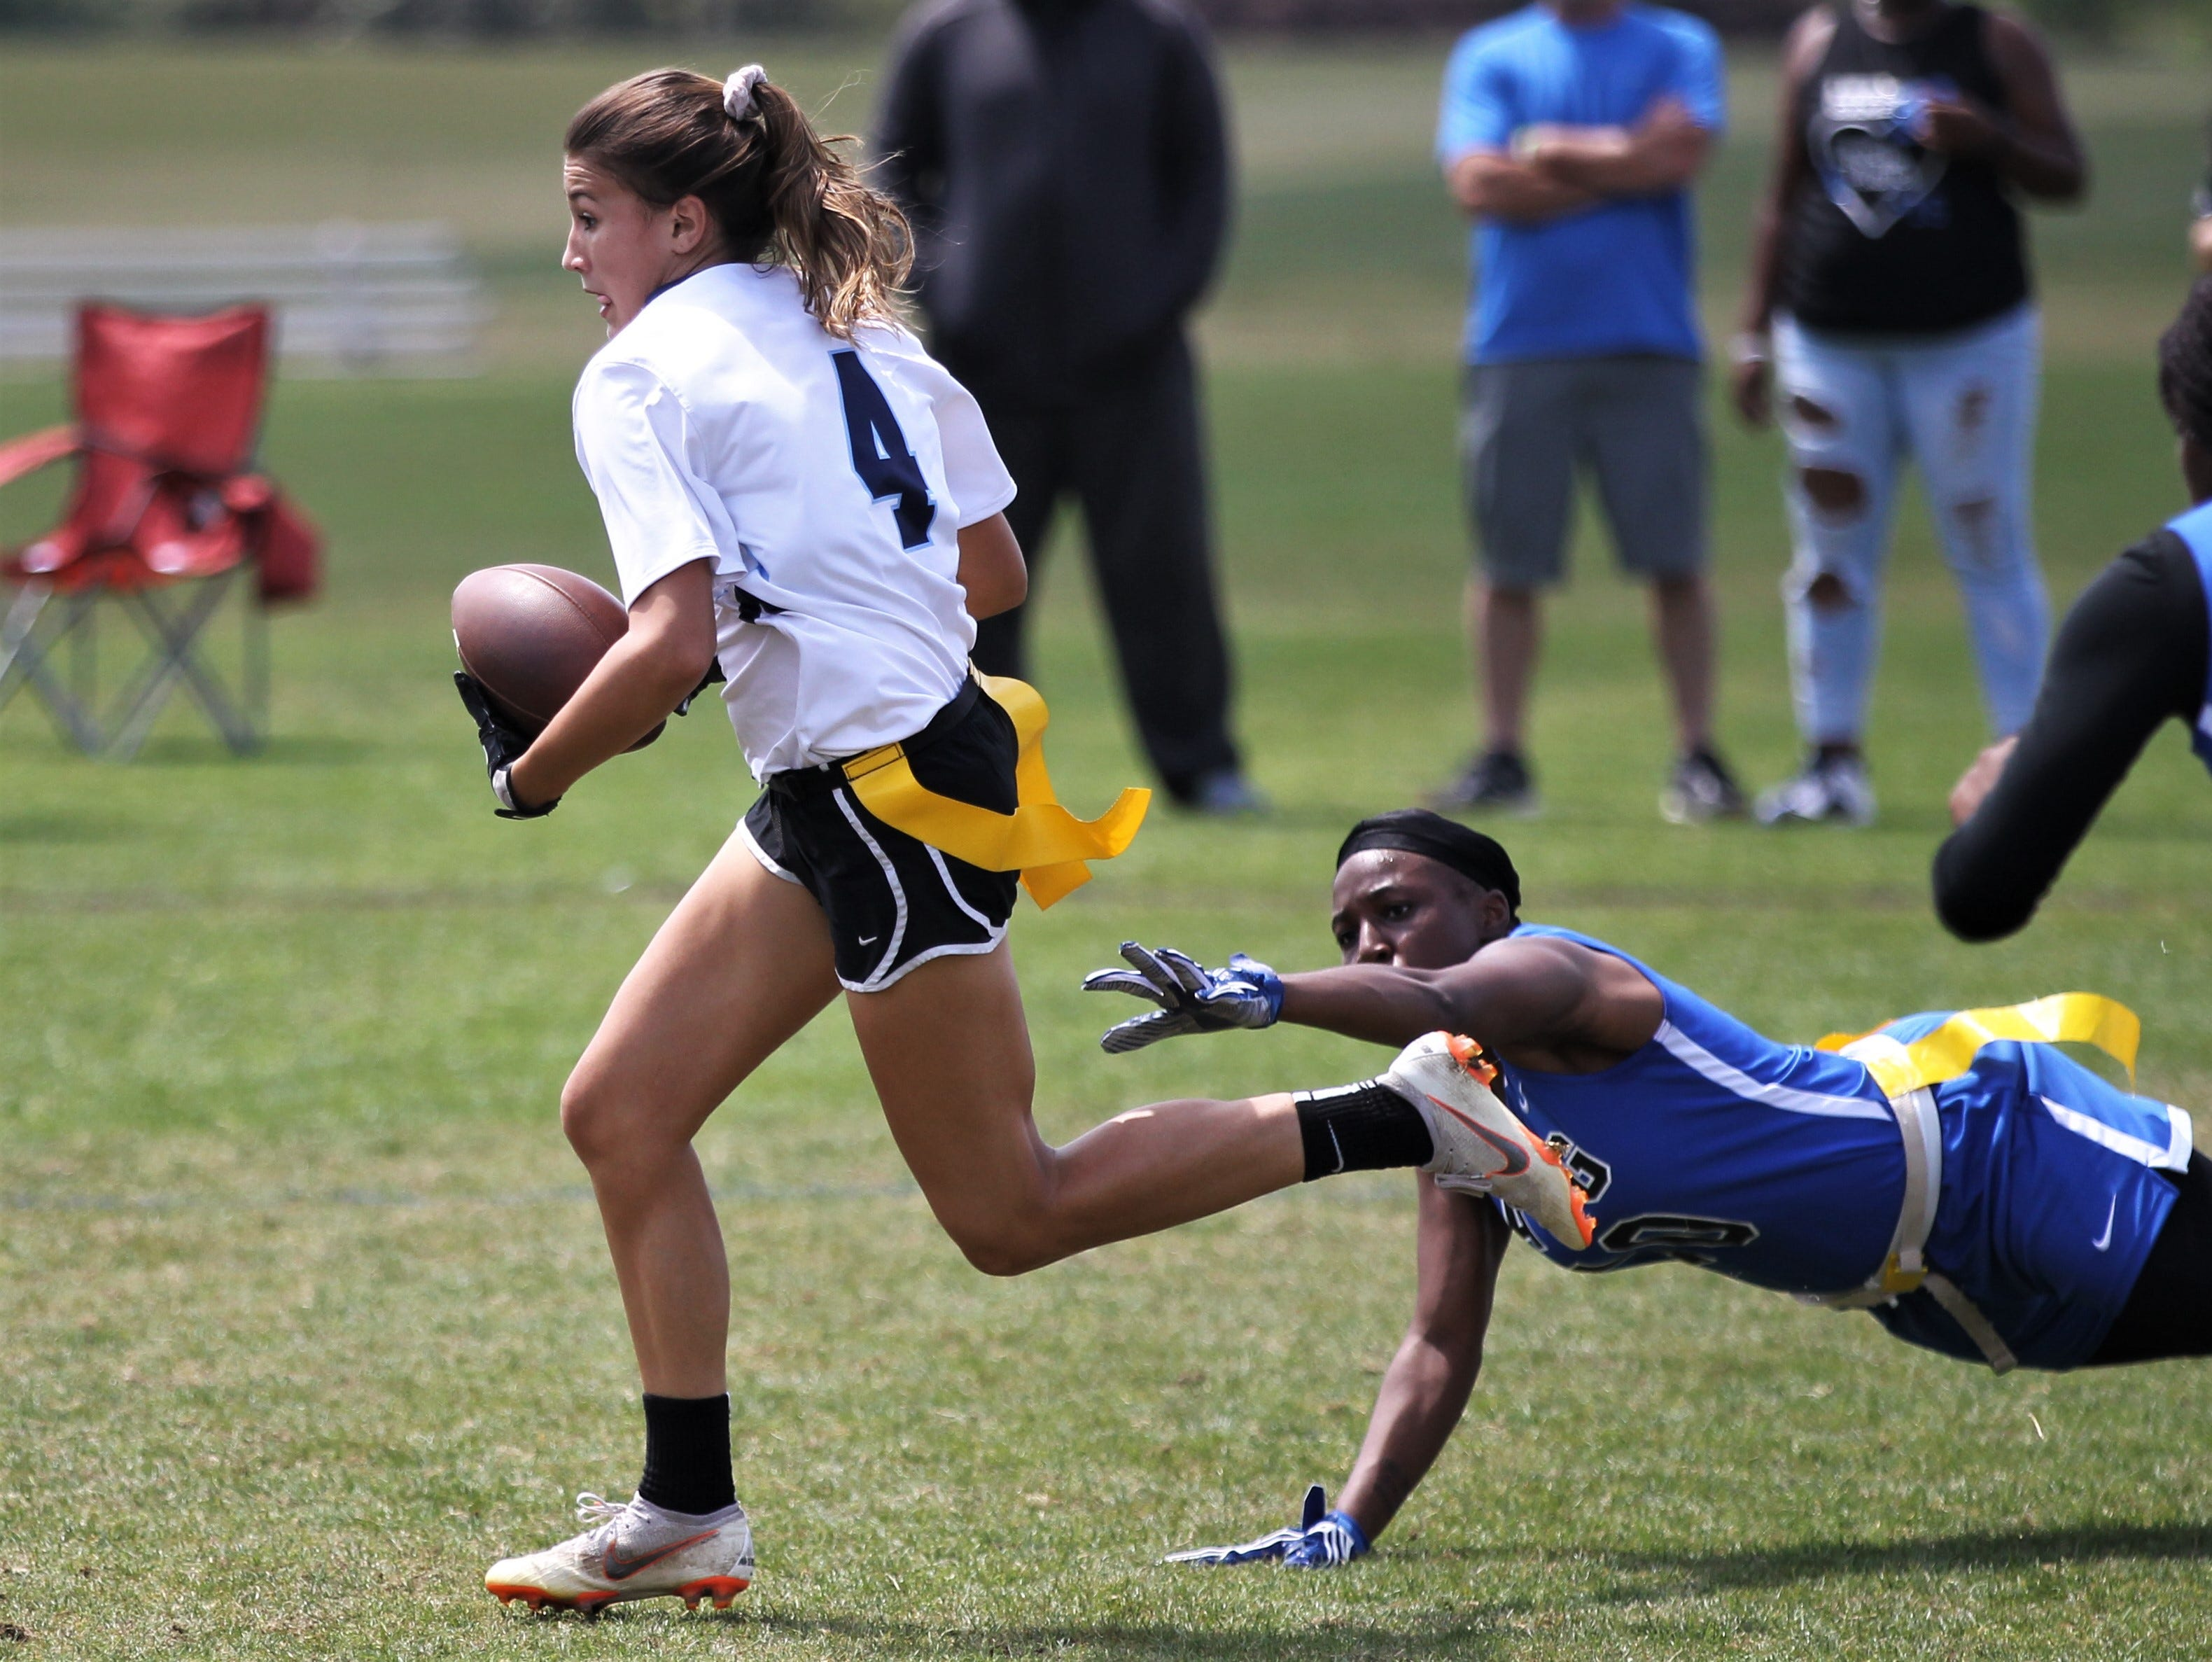 Newsome plays Godby in the 2019 Capital City Classic flag football tournament at the FSU Rec SportsPlex on April 6, 2019.